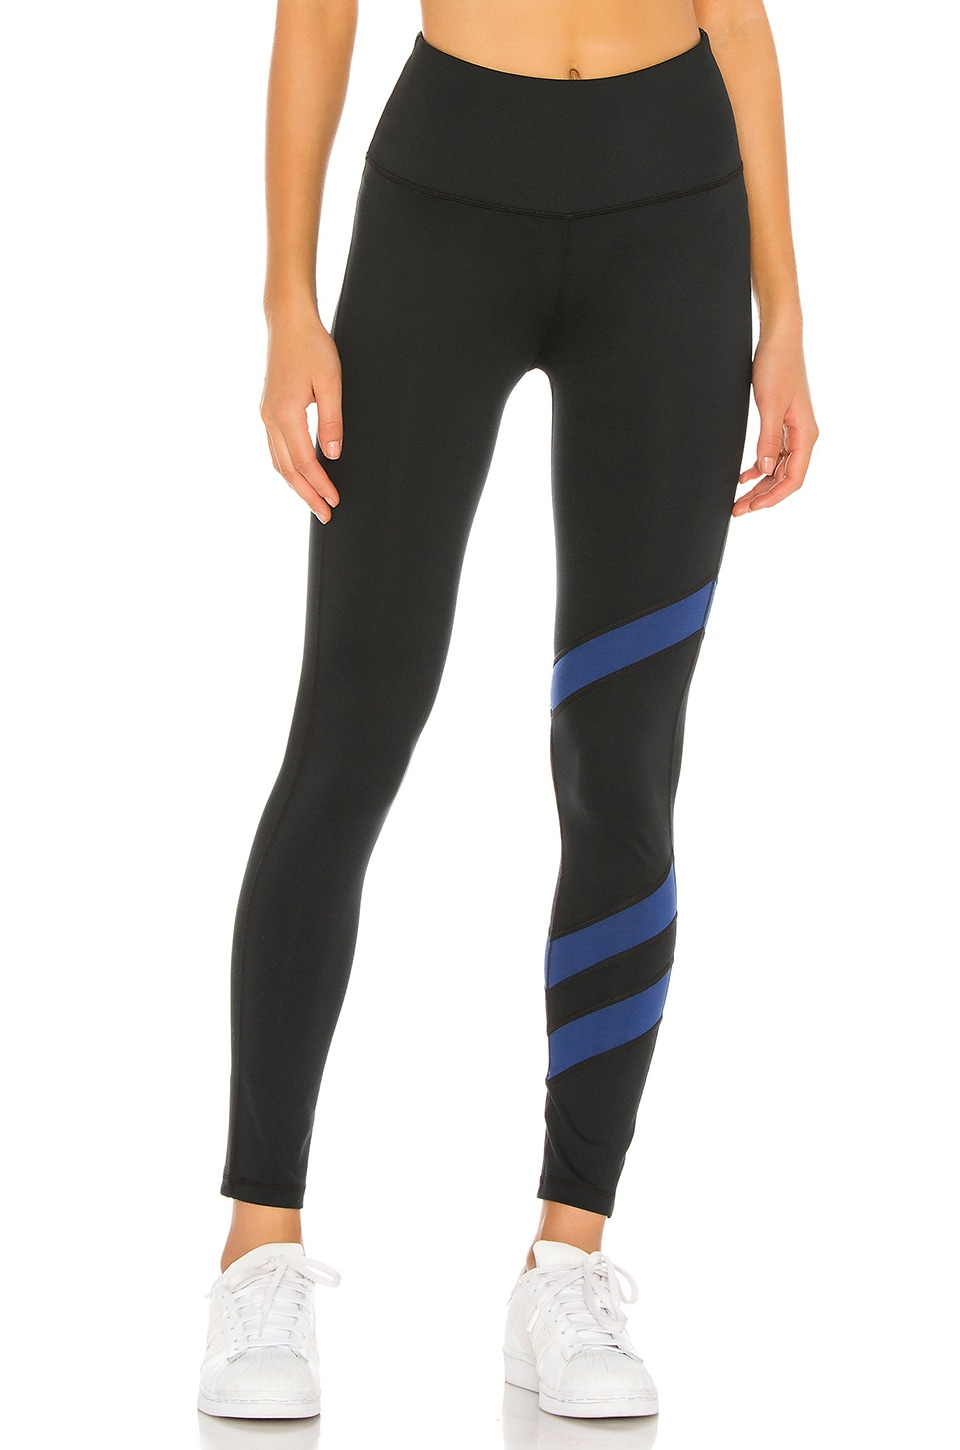 lukka lux Arrowed 7/8th Legging in Black Onyx